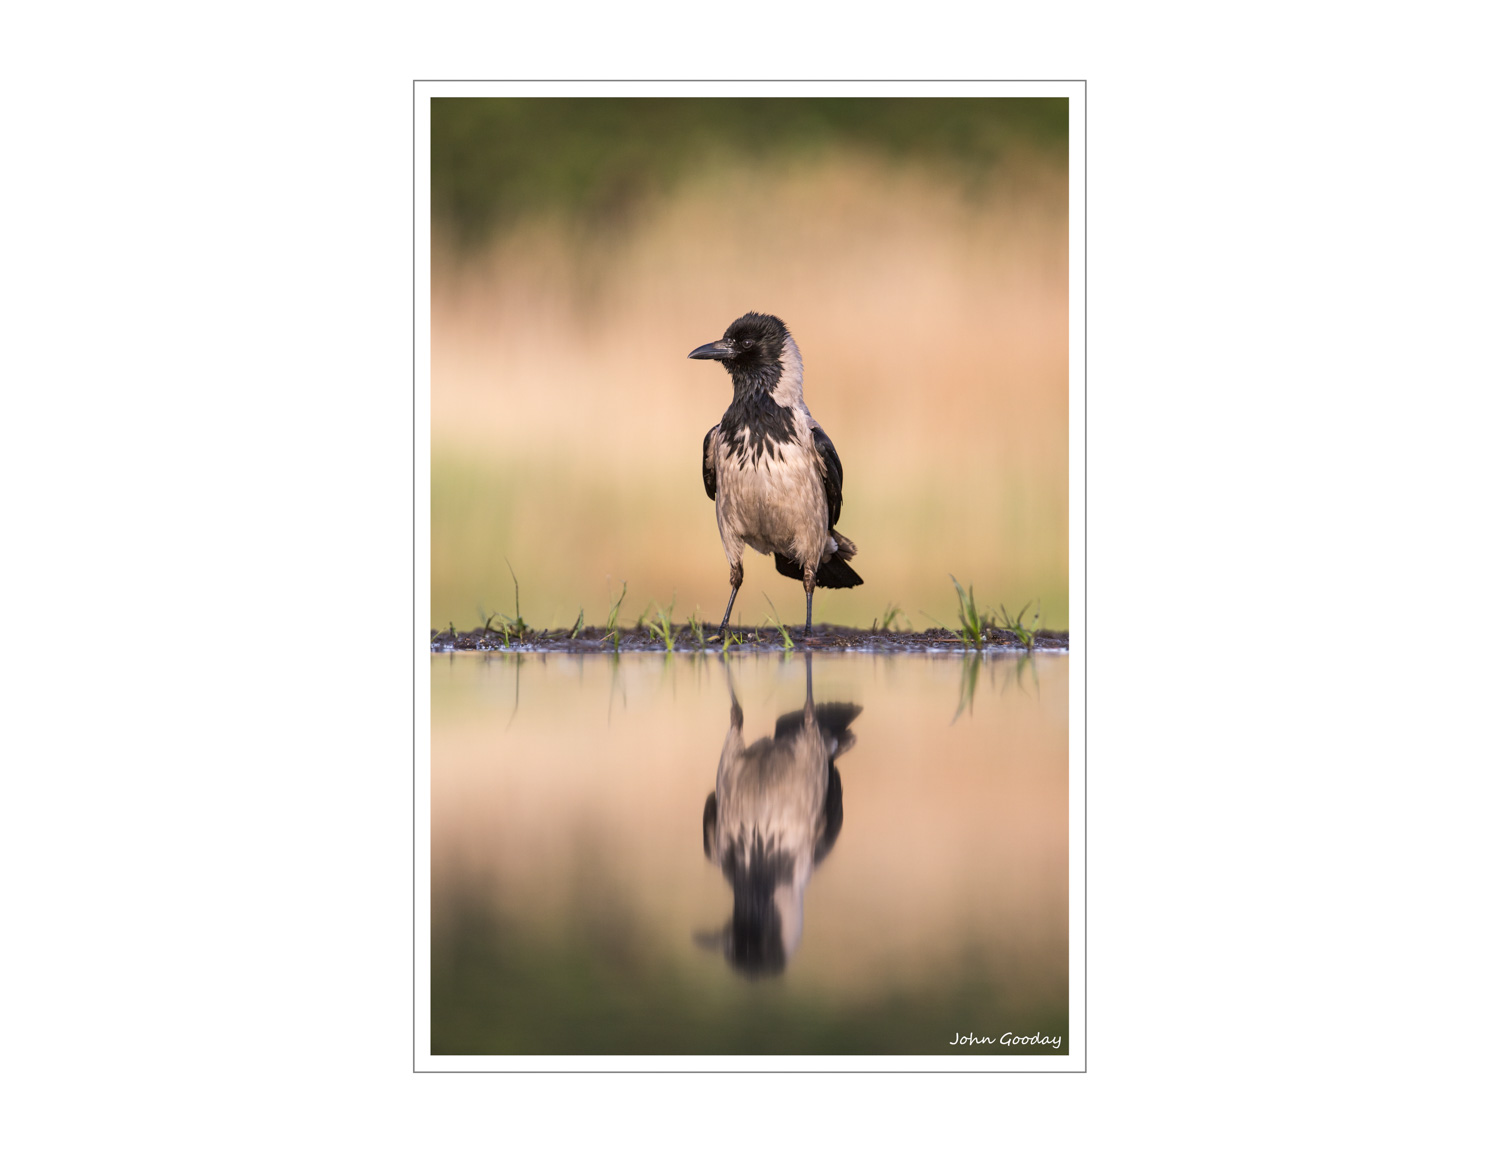 (Image: Hooded Crow. Canon EOS 5D Mark III, EF300mm f/2.8L IS + 1.4x III, 1/800 sec @ f/5, ISO 640, tripod, hide)